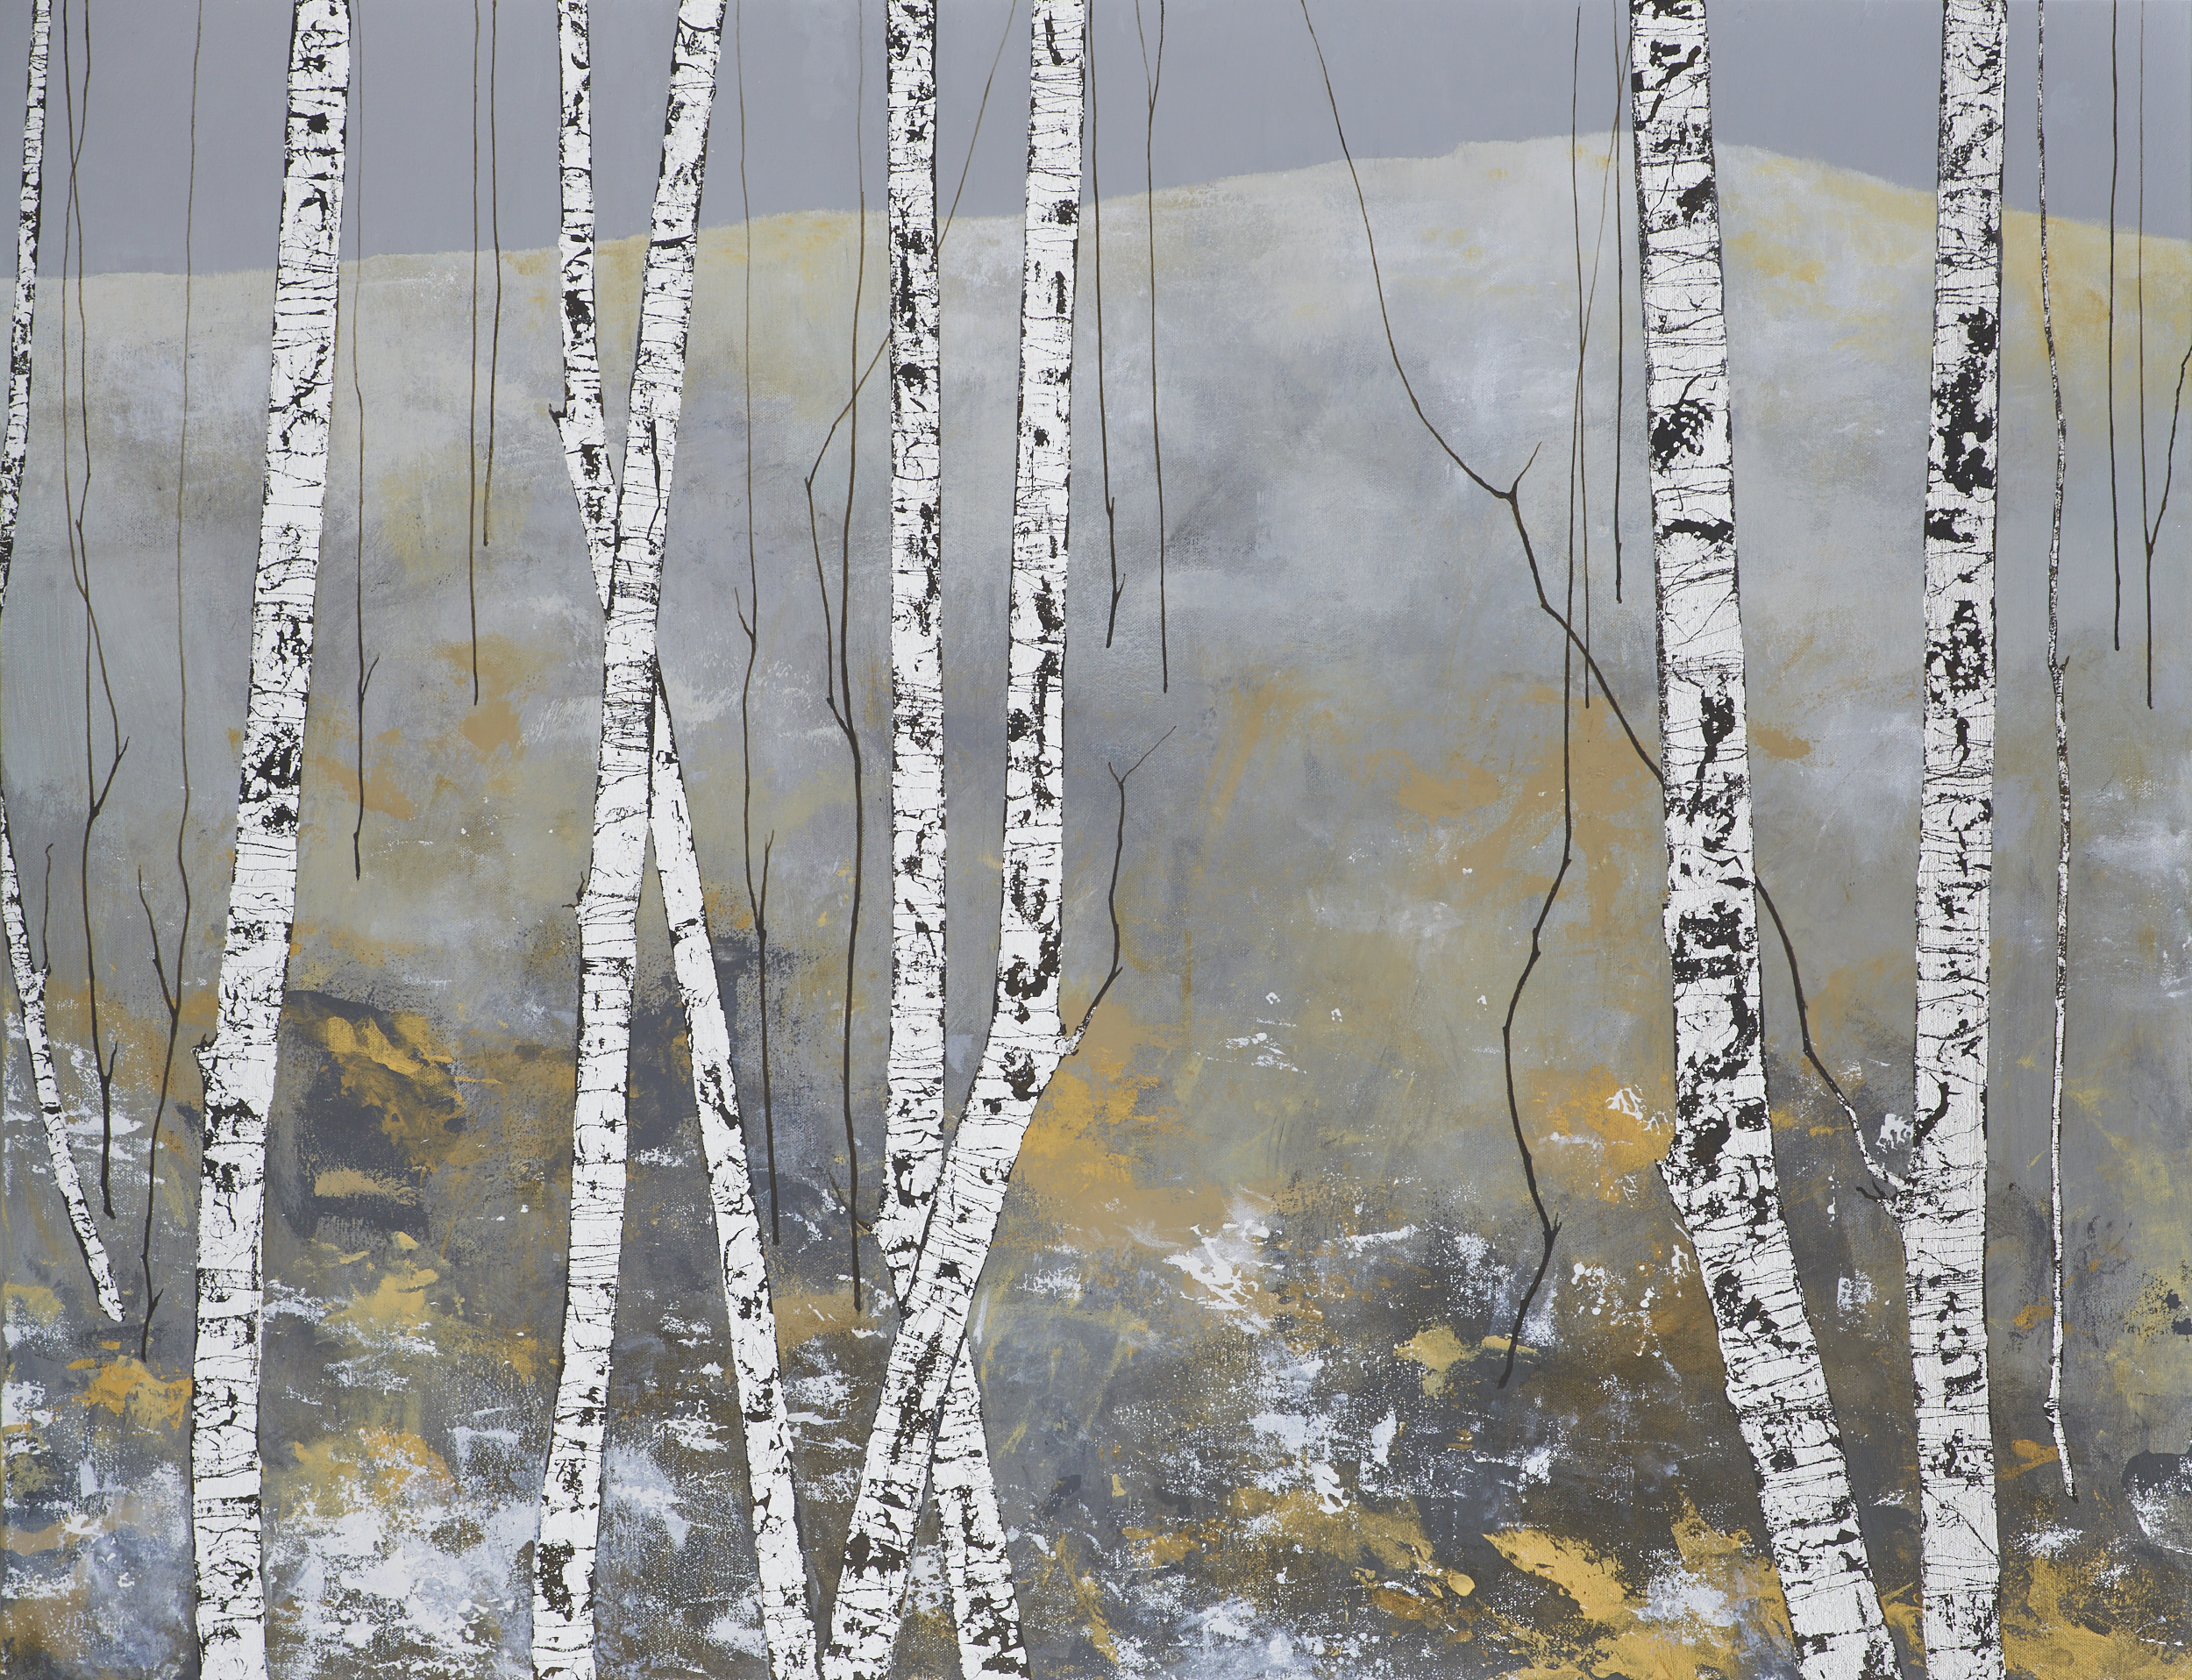 ERICA'S FIELD 102x76cm | mixed media on canvas with silver leaf | £2,200.00 | SOLD